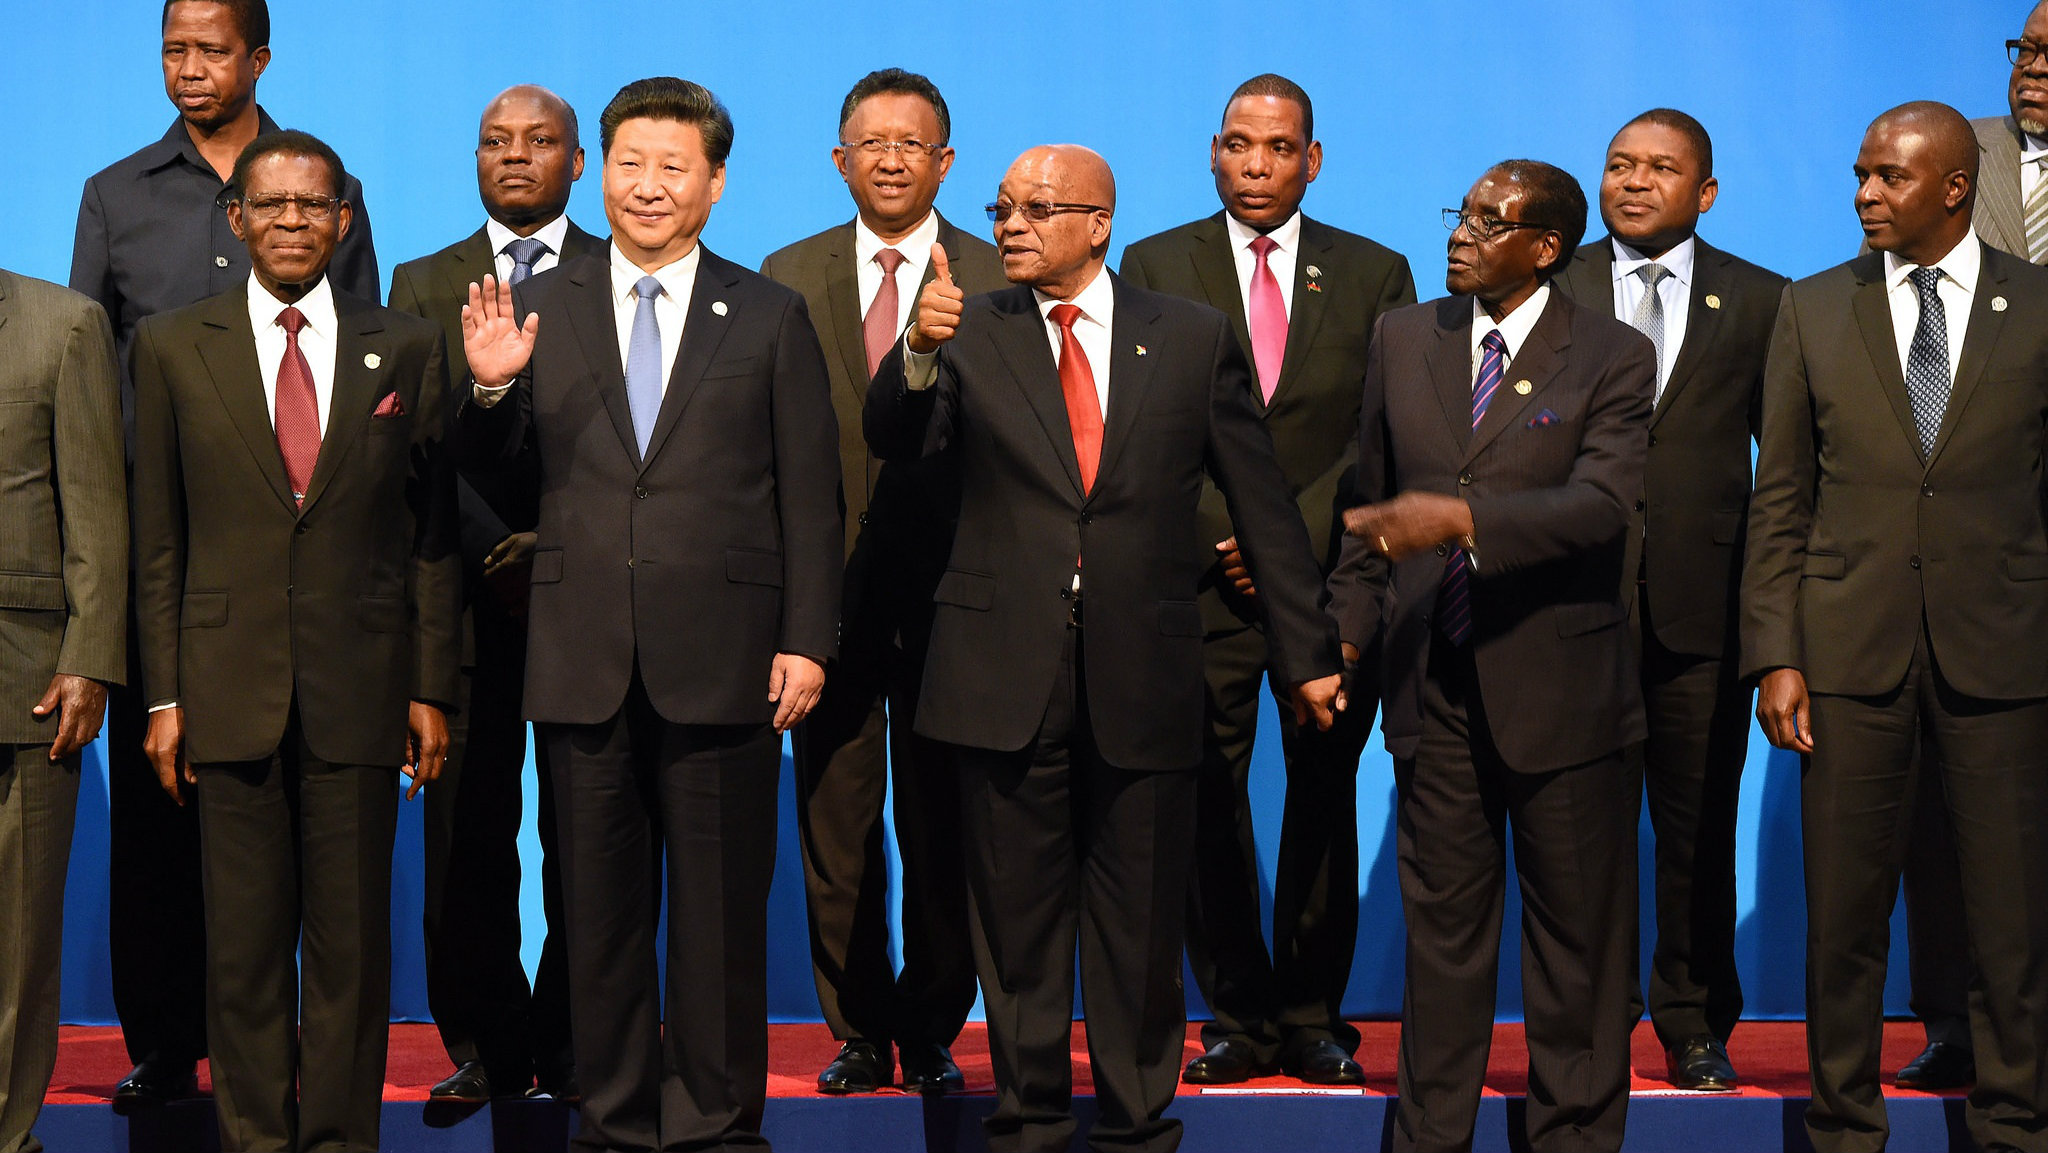 Xi Jinping (second from left) at the Forum on China-Africa Cooperation in Johannesburg.